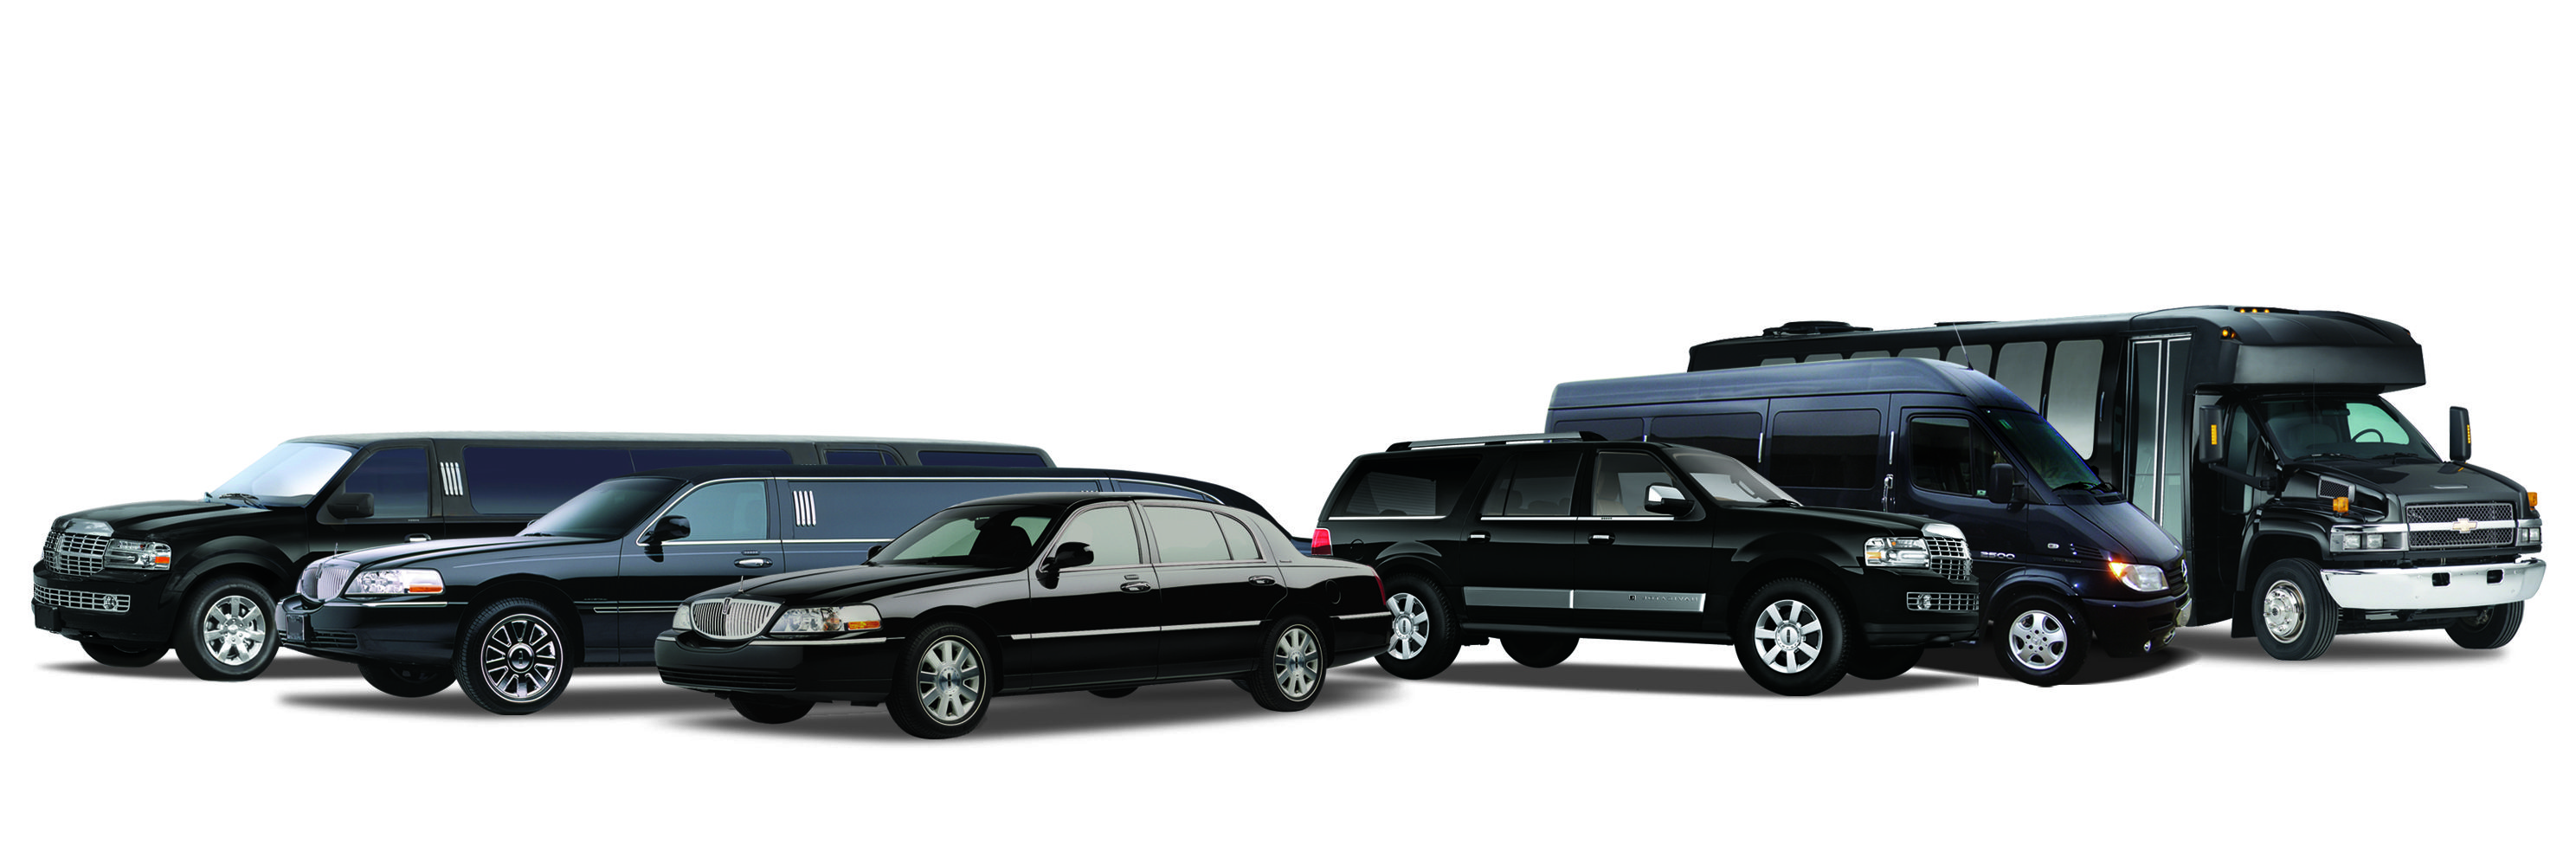 Always Determine The Capacity Of The Company Limousine Car Town Car Service Luxury Car Rental